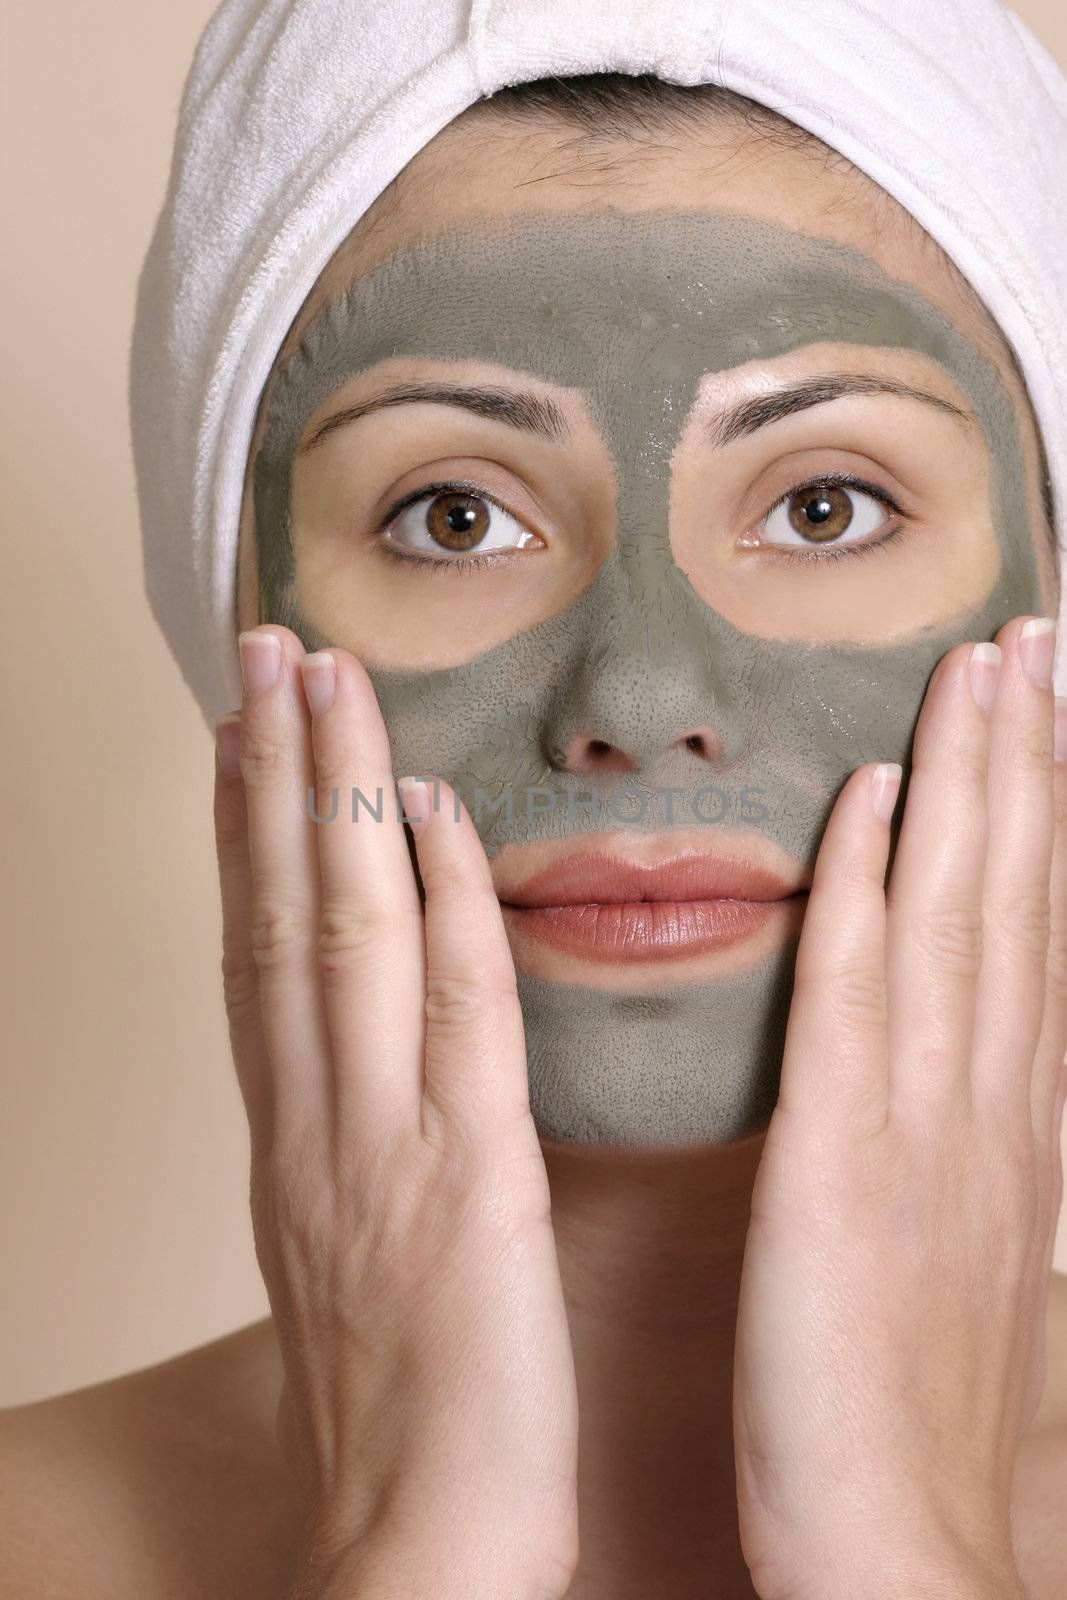 Beautiful girl wearing a purifying beauty mask on her face.